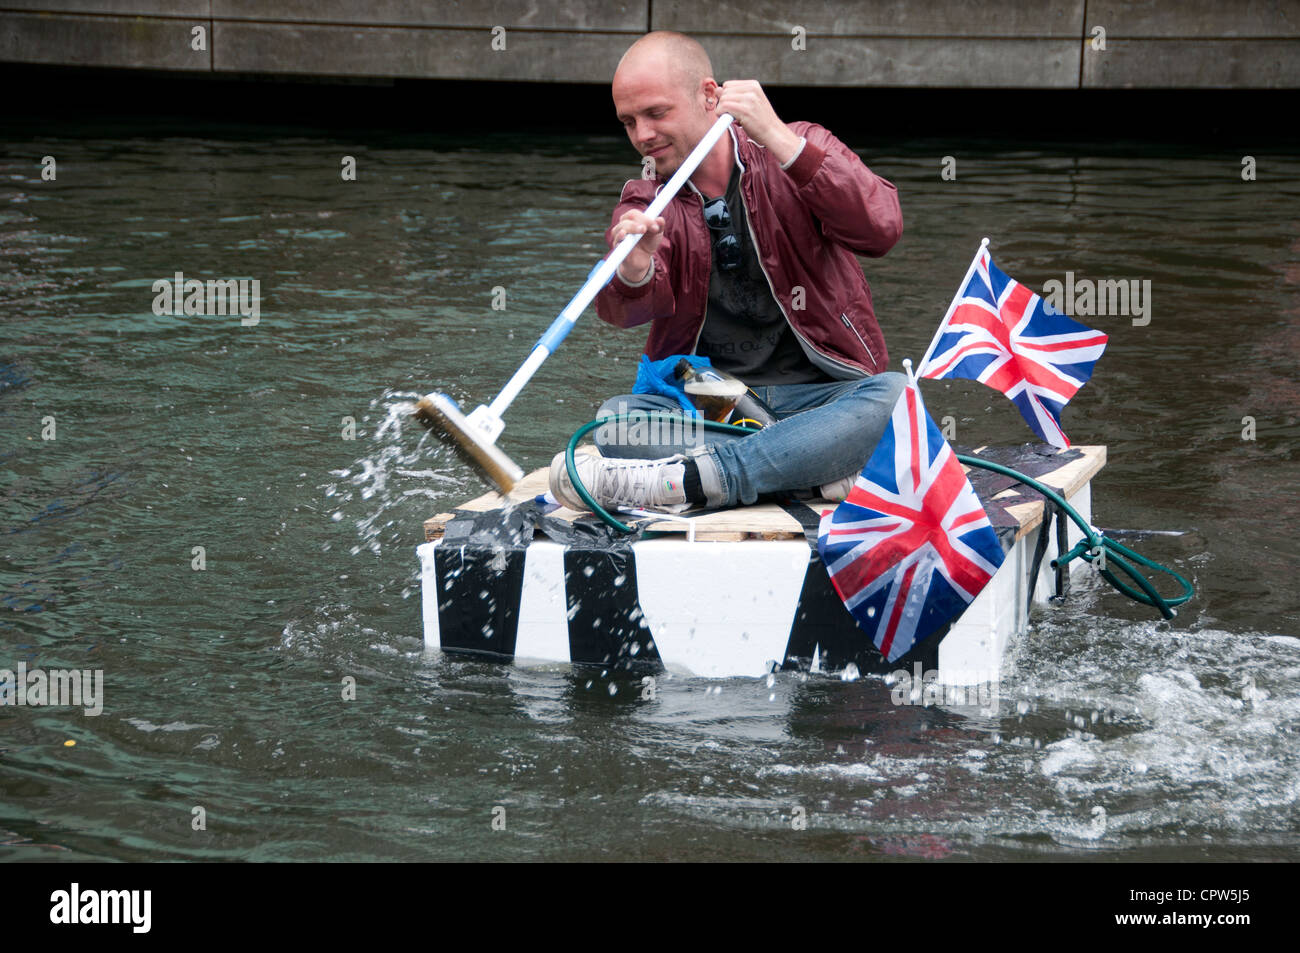 Queen's Jubillegal flotilla floating party, Regent's Canal. Man on home-made raft paddling with floor mop - Stock Image